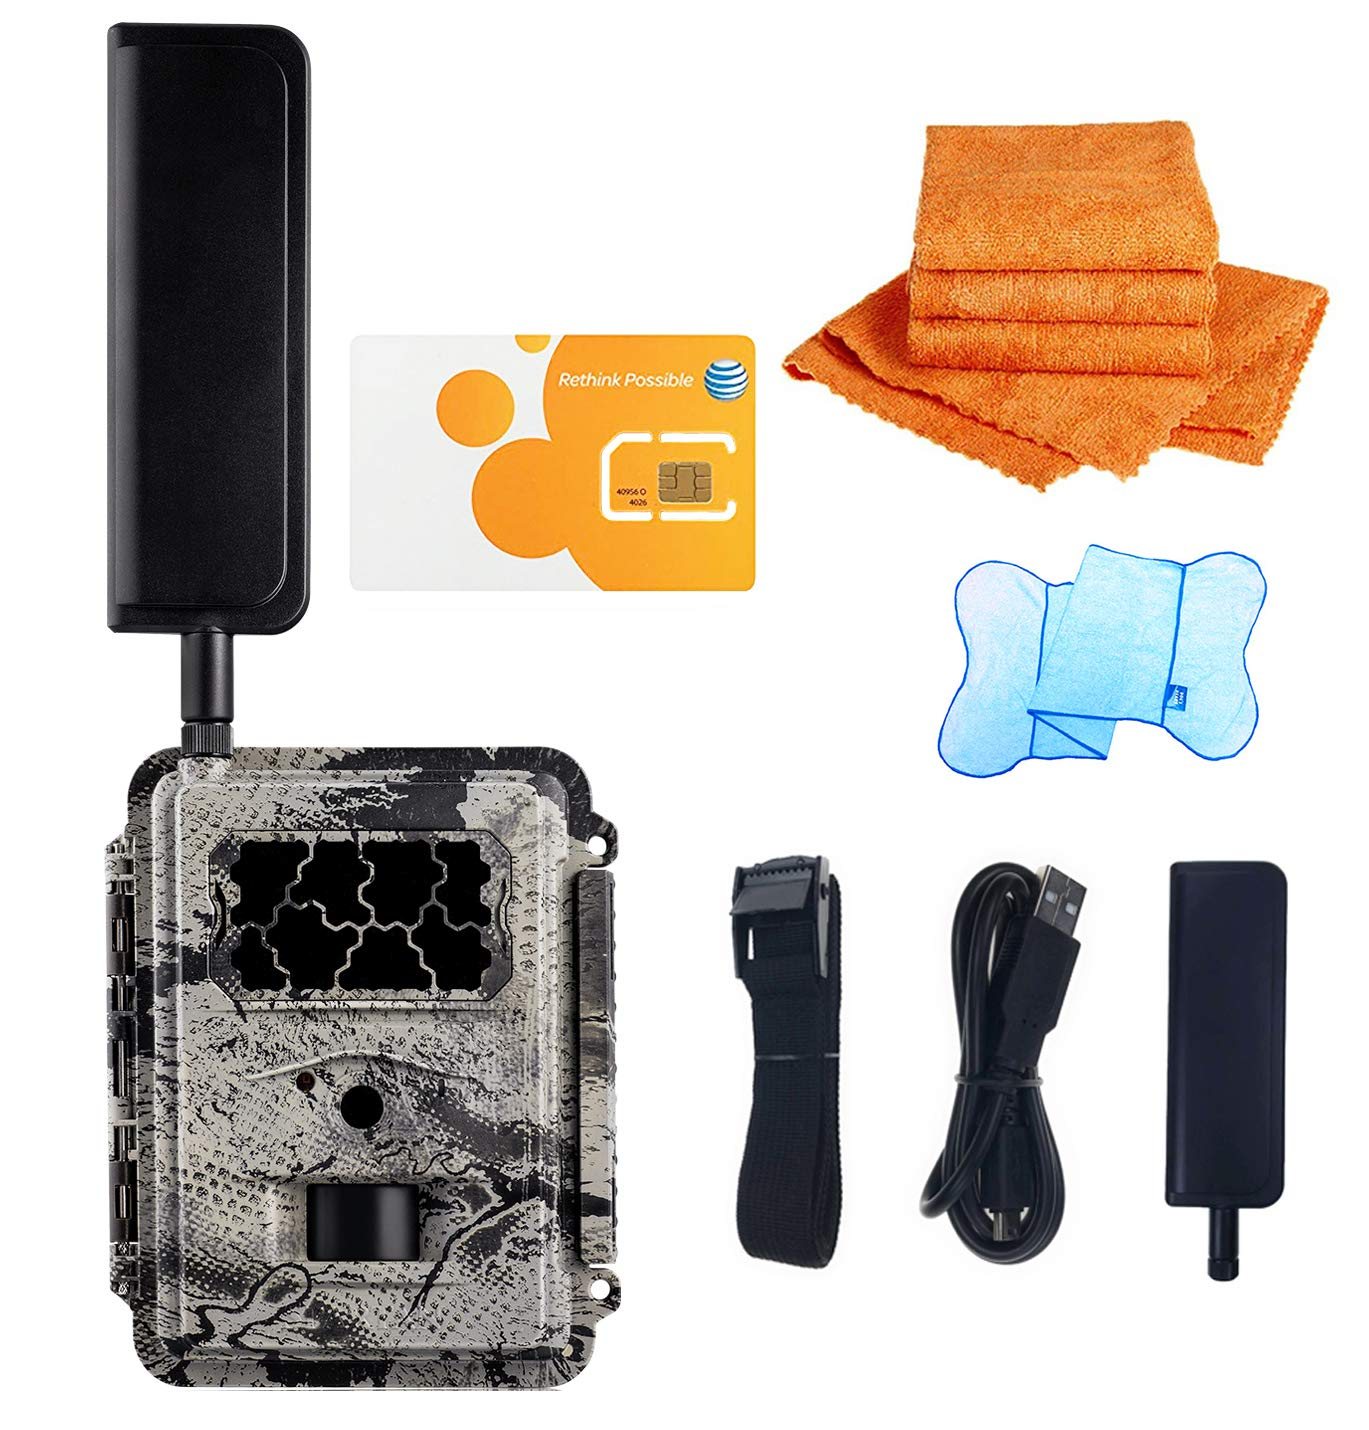 SPARTAN HD GoCam (4G AT&T Version, Model#GC-A4Gb, Blackout Infrared) 4G Wireless UTowel Bundle Deal Bundled with UTowels Edgeless Microfiber Towels by SPARTAN